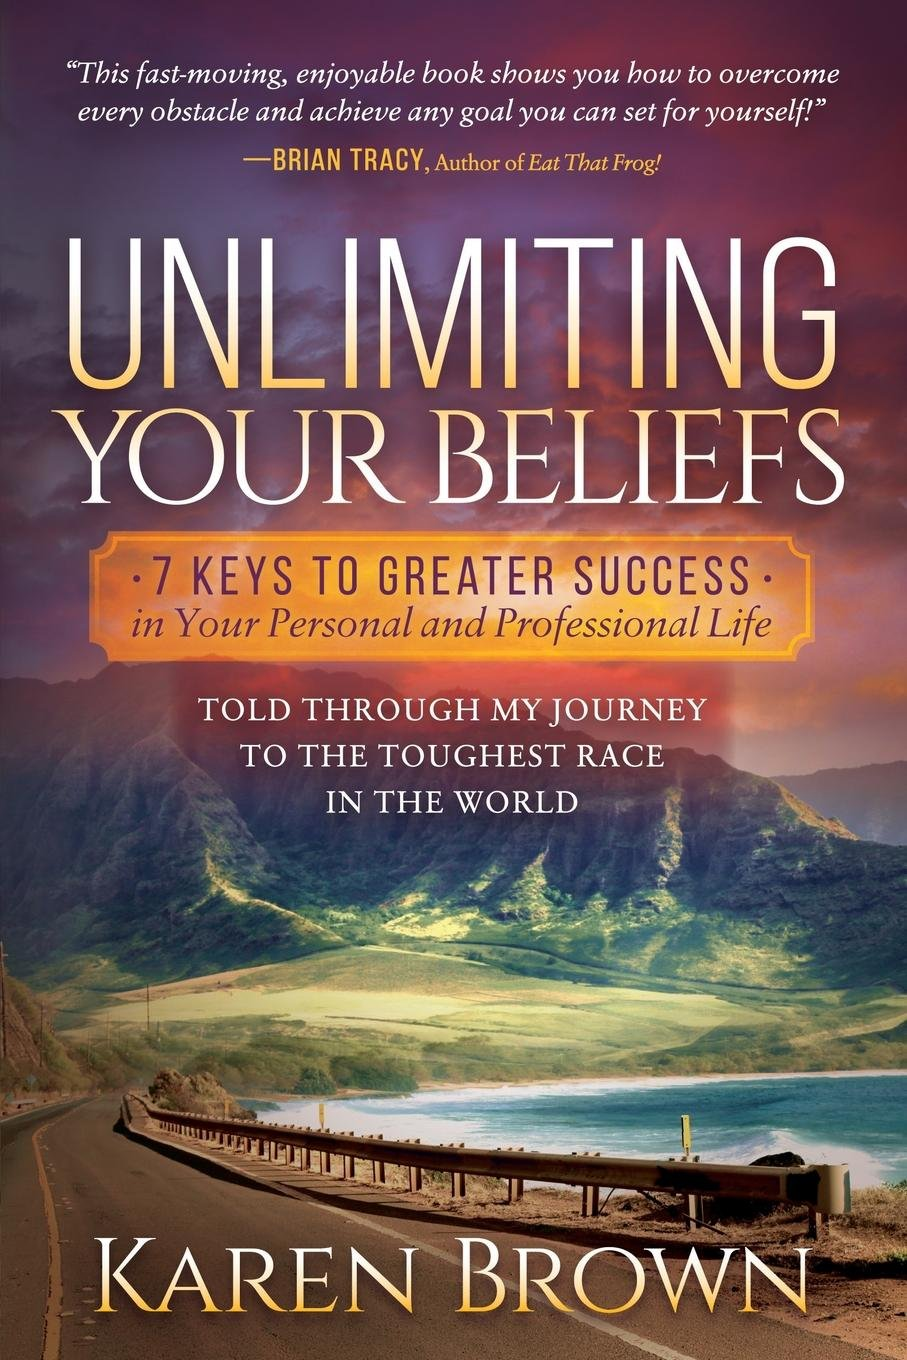 Download Unlimiting Your Beliefs: 7 Keys to Greater Success in Your Personal and Professional Life; Told Through My Journey to the Toughest Race in the World PDF